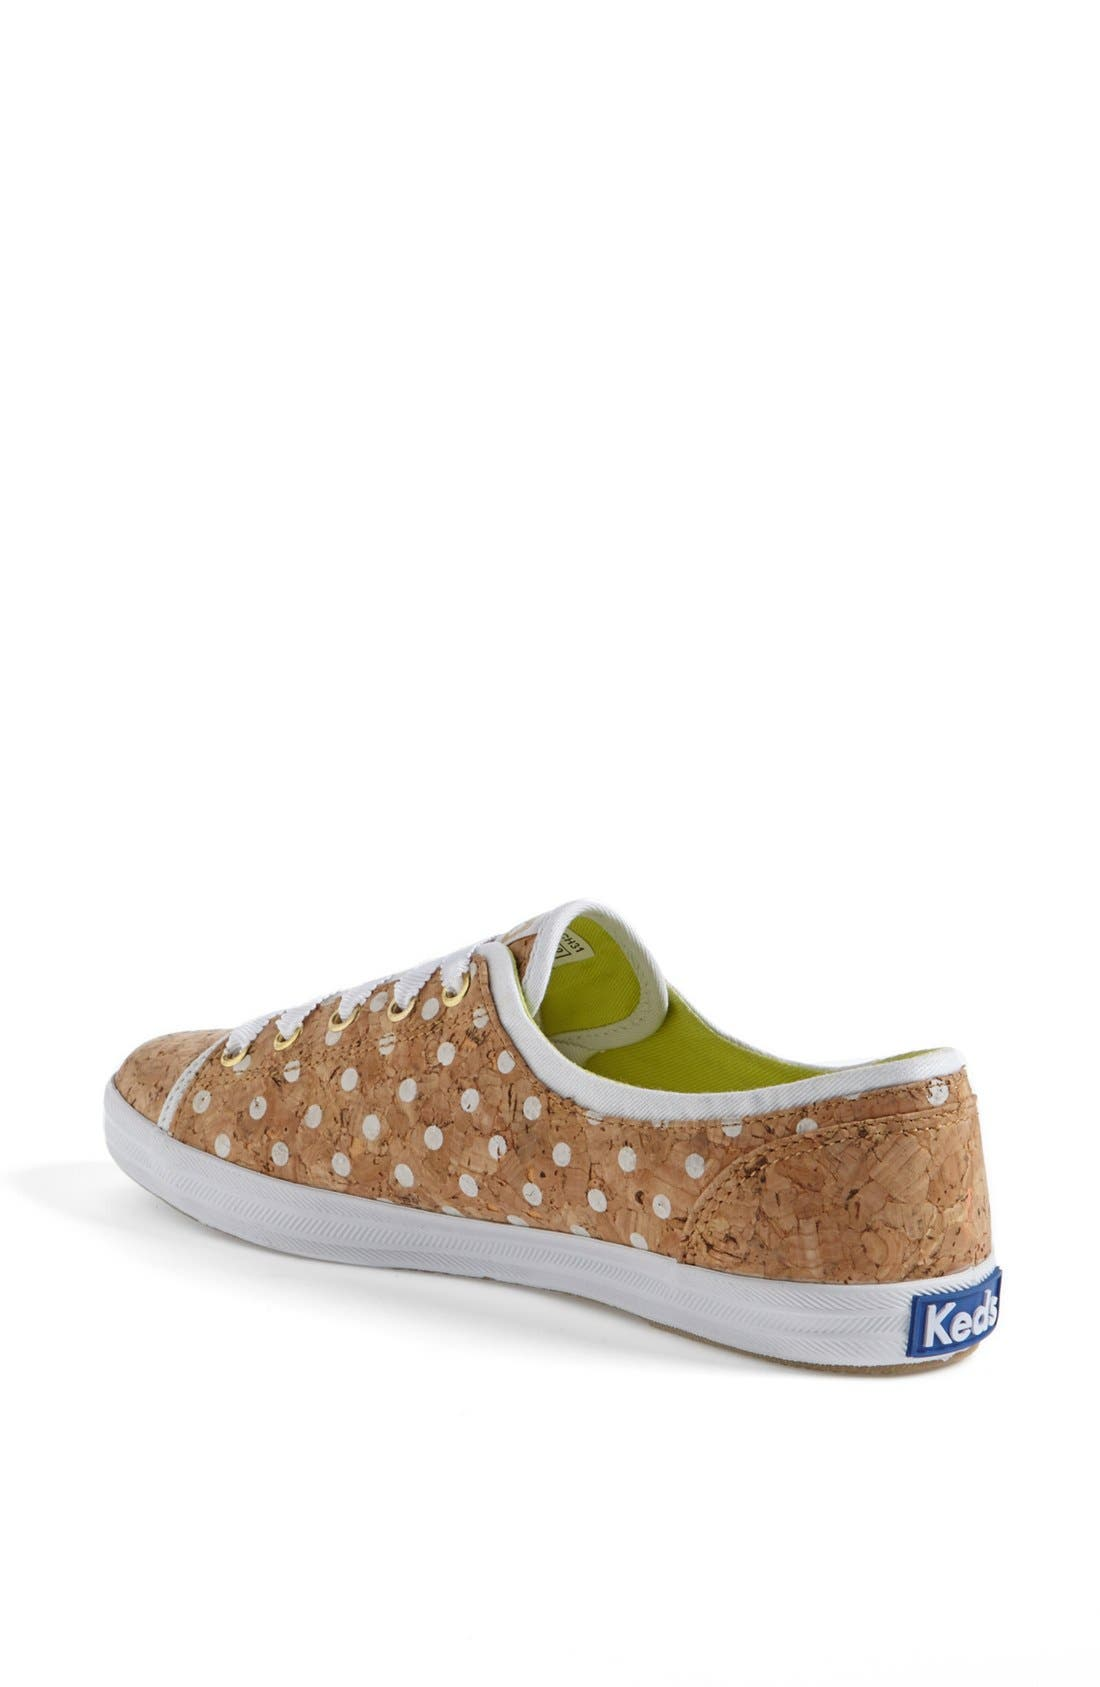 Alternate Image 2  - Keds® 'Rally' Cork Sneaker (Women)